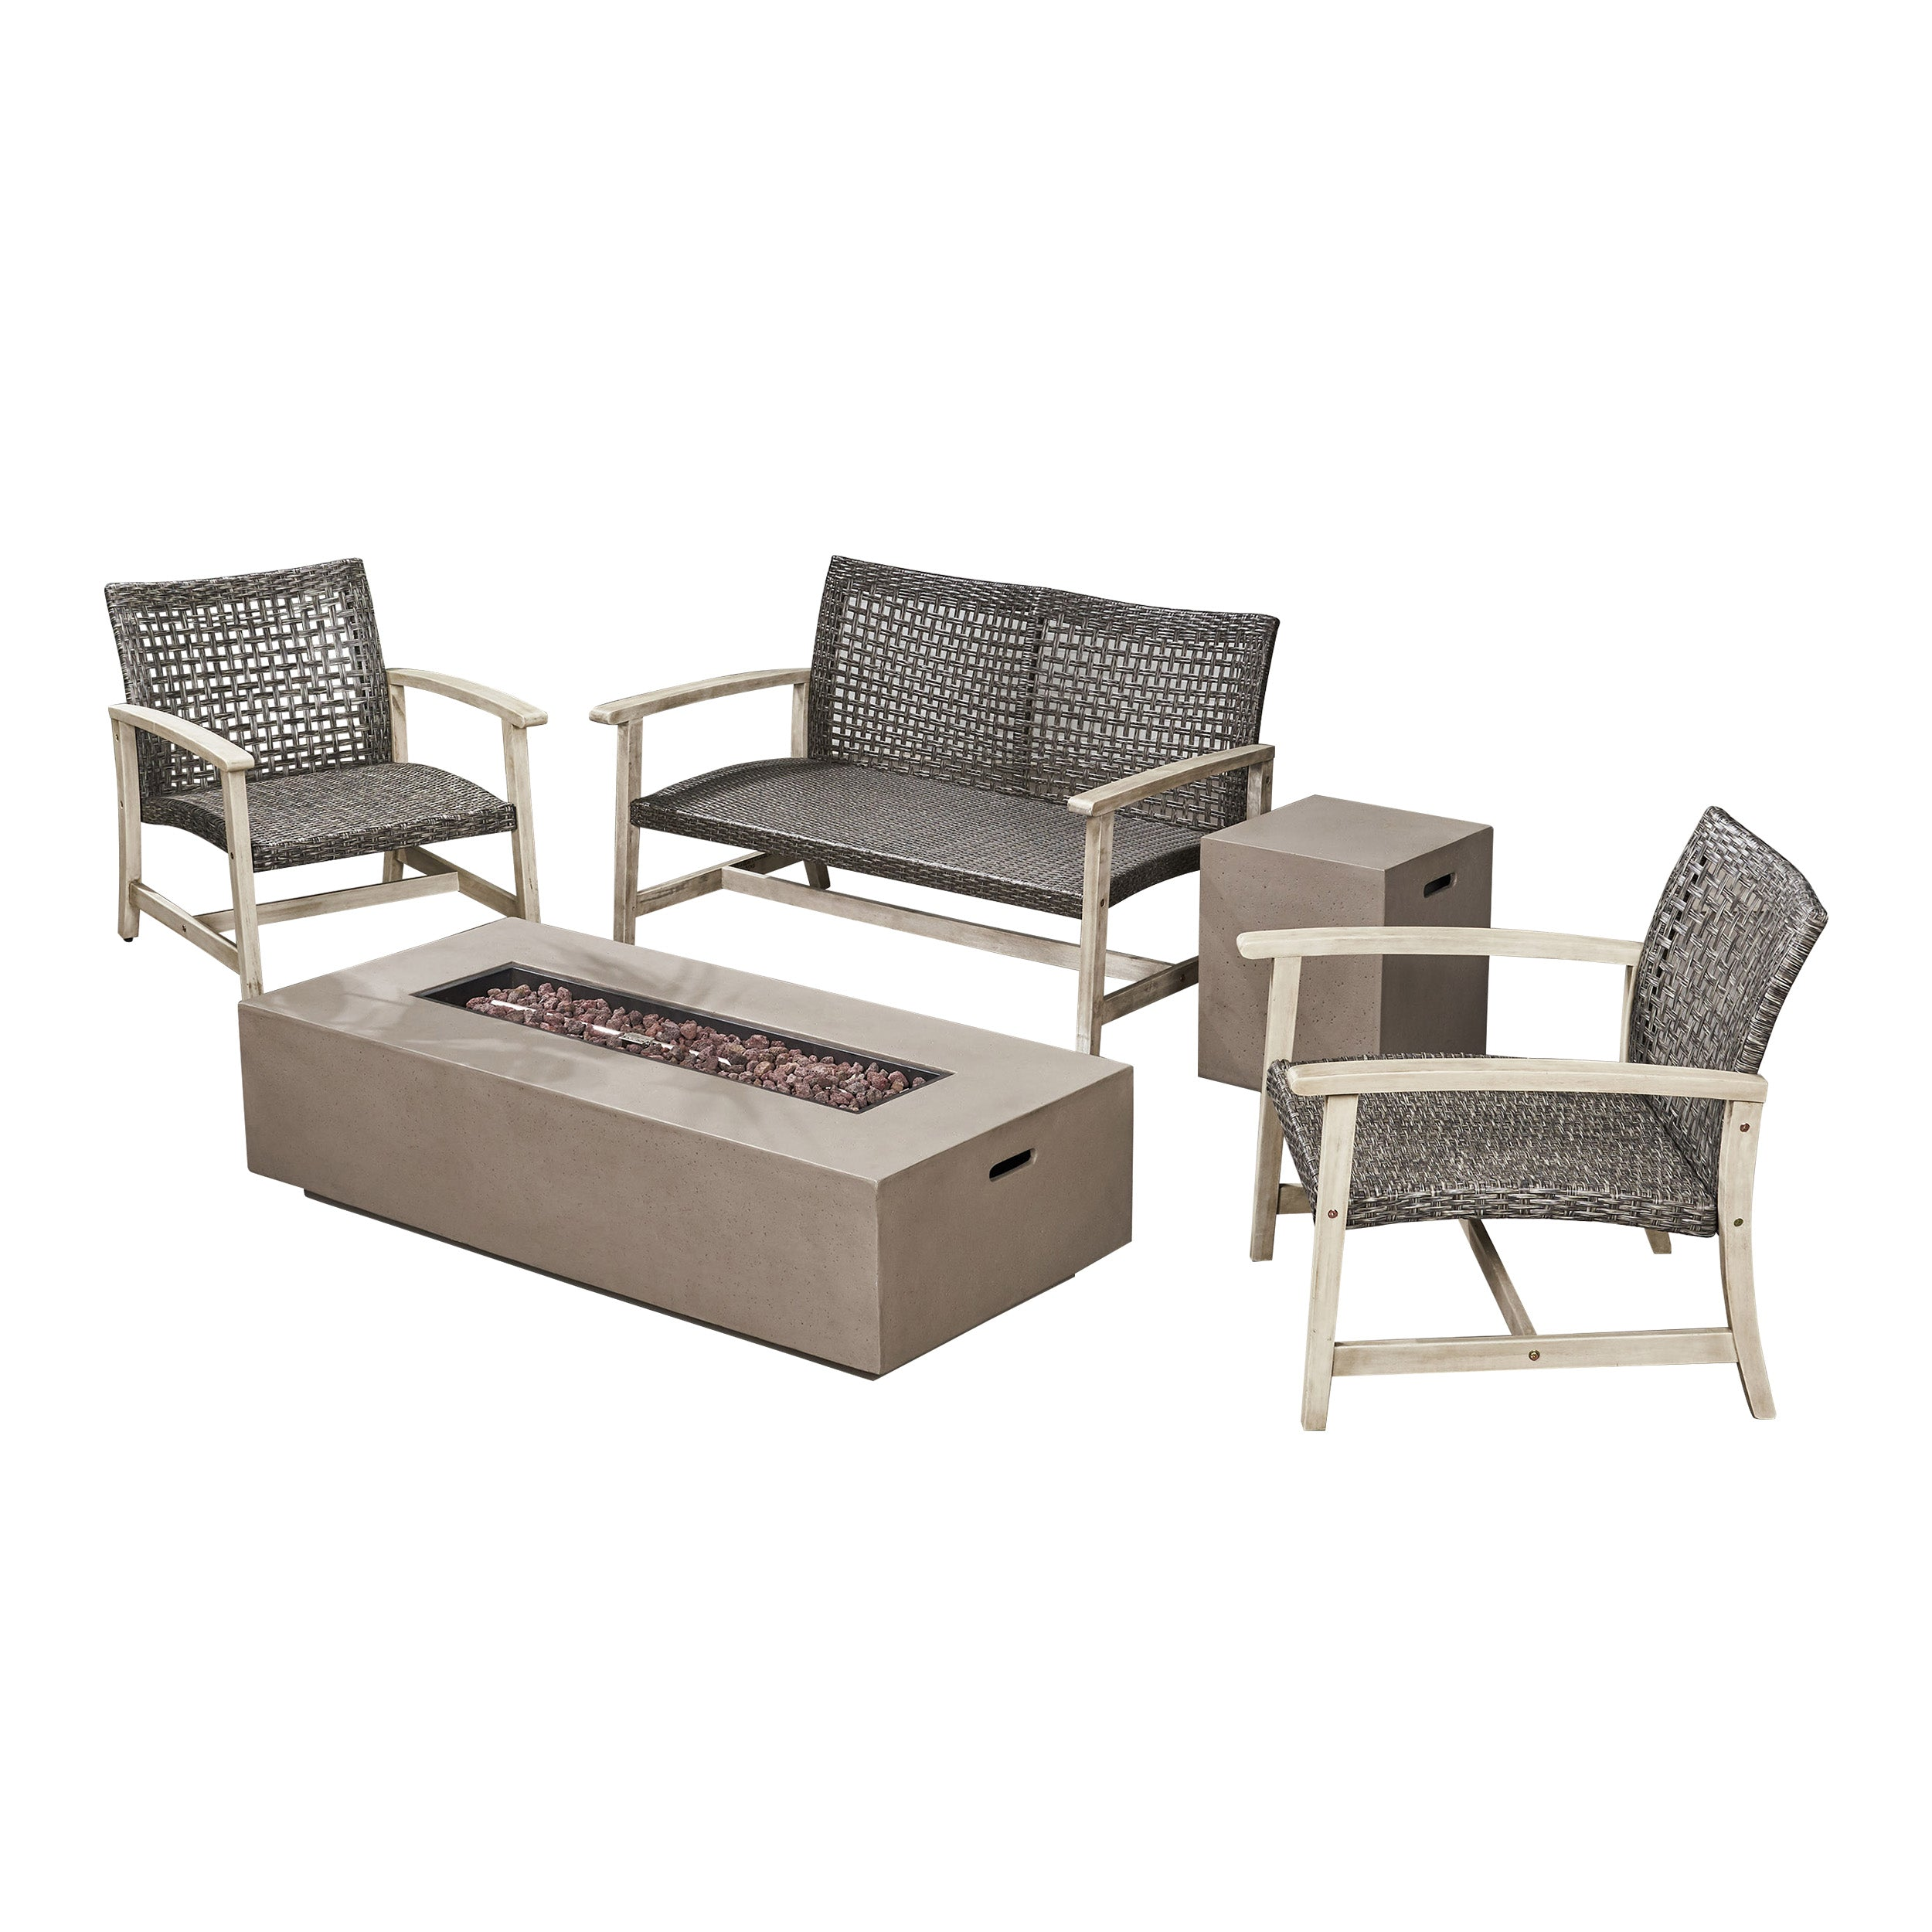 Alliso Outdoor 5 Piece Wood and Wicker Chat Set with Fire Pit Default Title